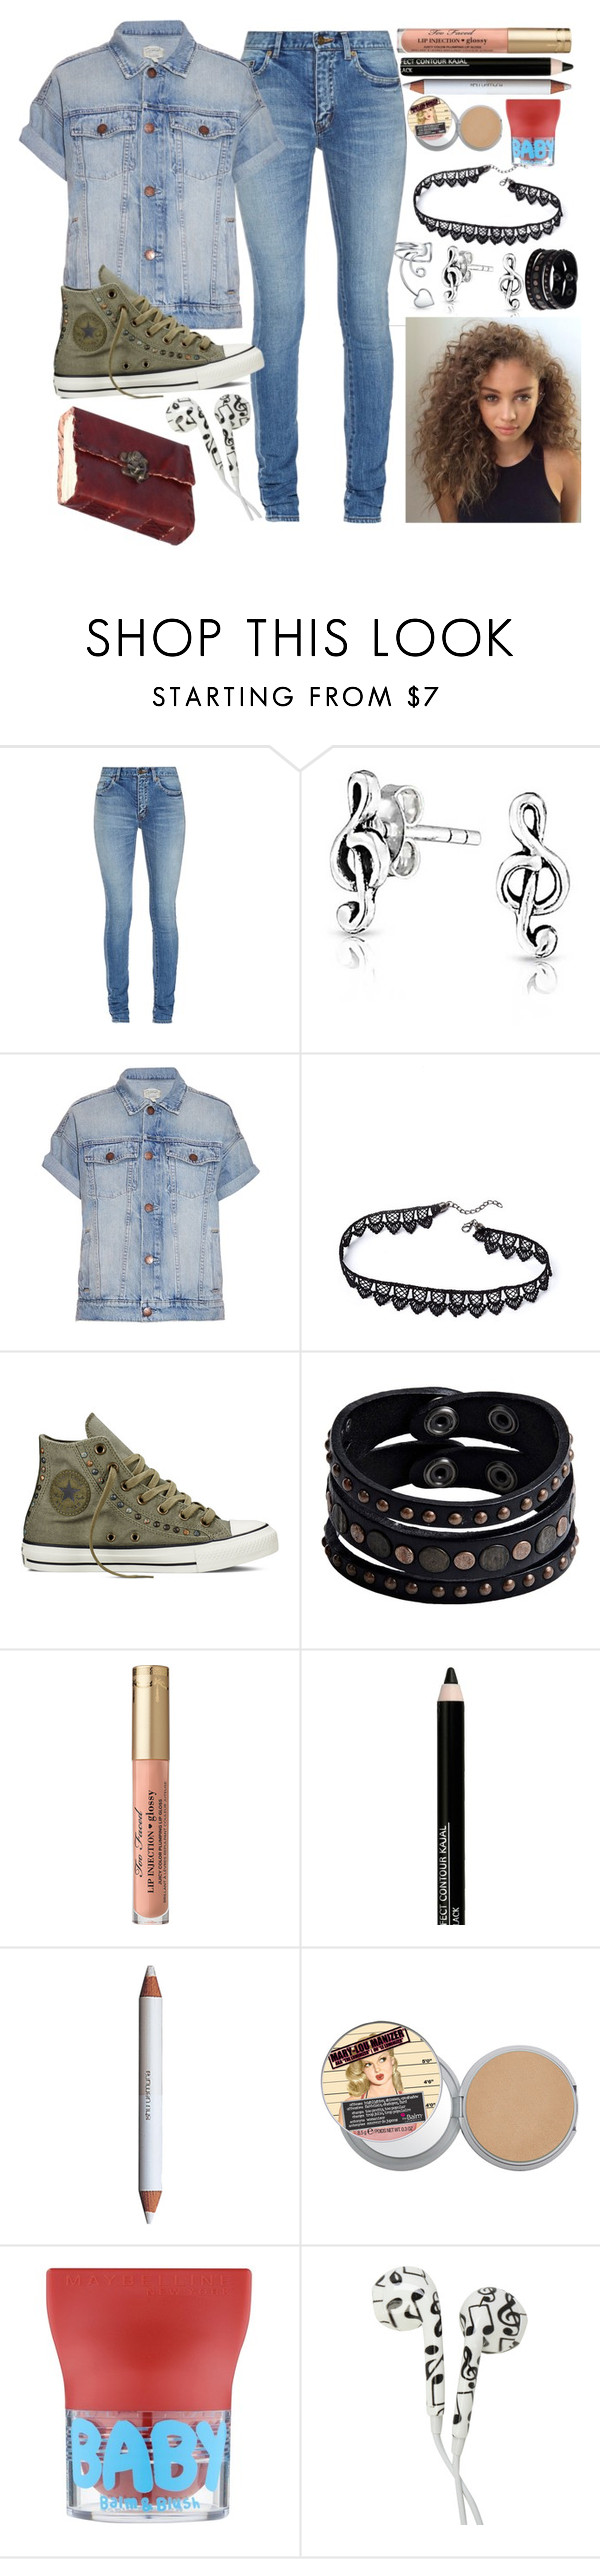 """The Musician at School "" by ahardcorepianist ❤ liked on Polyvore featuring Yves Saint Laurent, Bling Jewelry, Current/Elliott, Converse, Replay, Isadora, shu uemura and Maybelline"